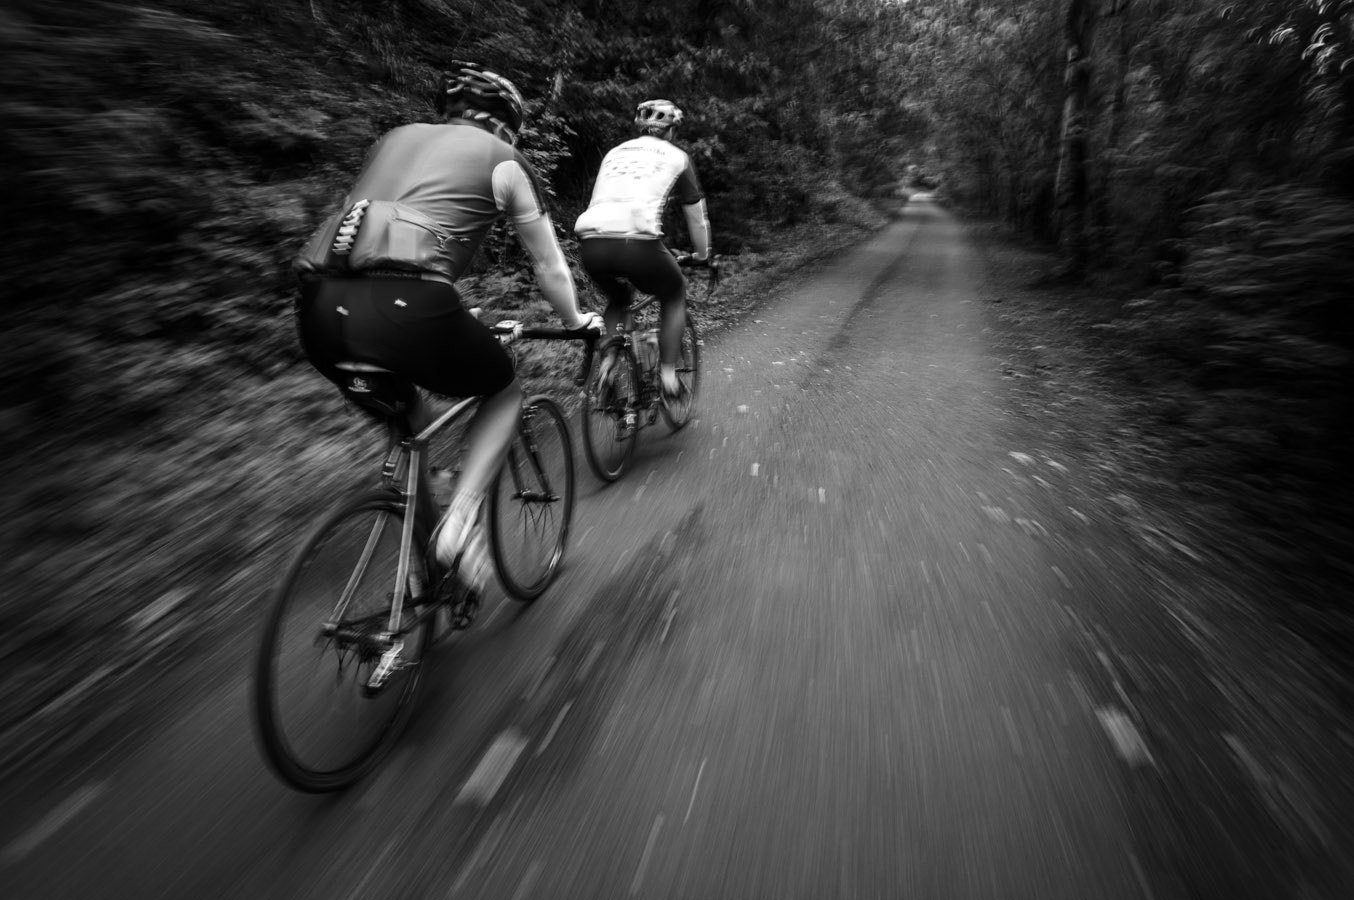 Photograph Road bikers a blur by Stuart Brookes on 500px